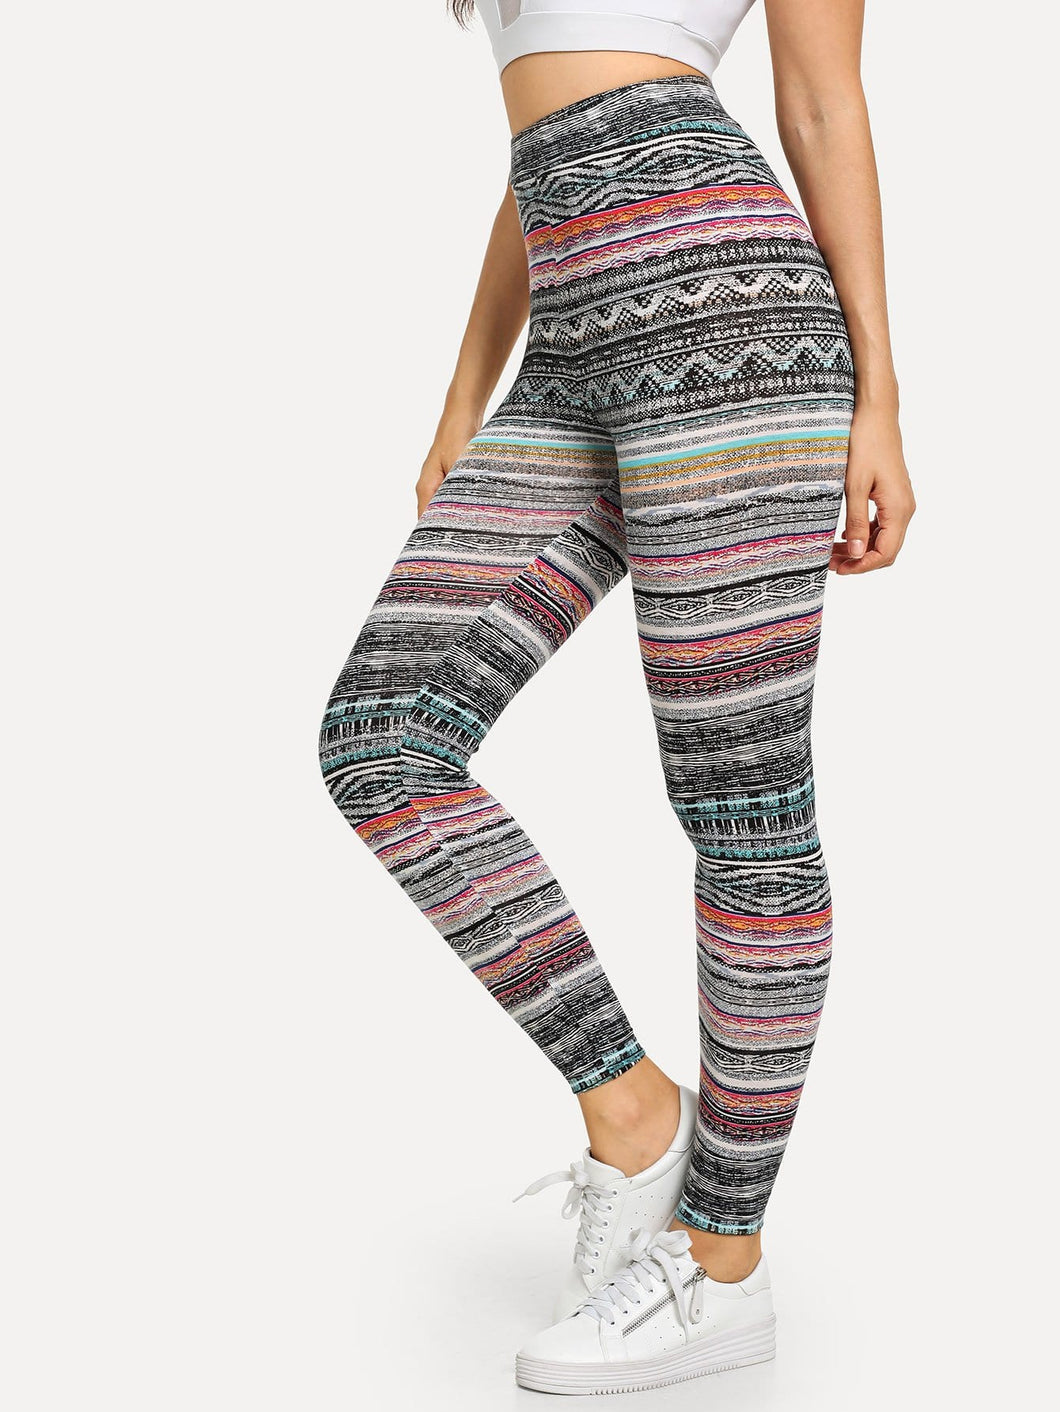 High Waist Tribal Print Leggings [chicberri]